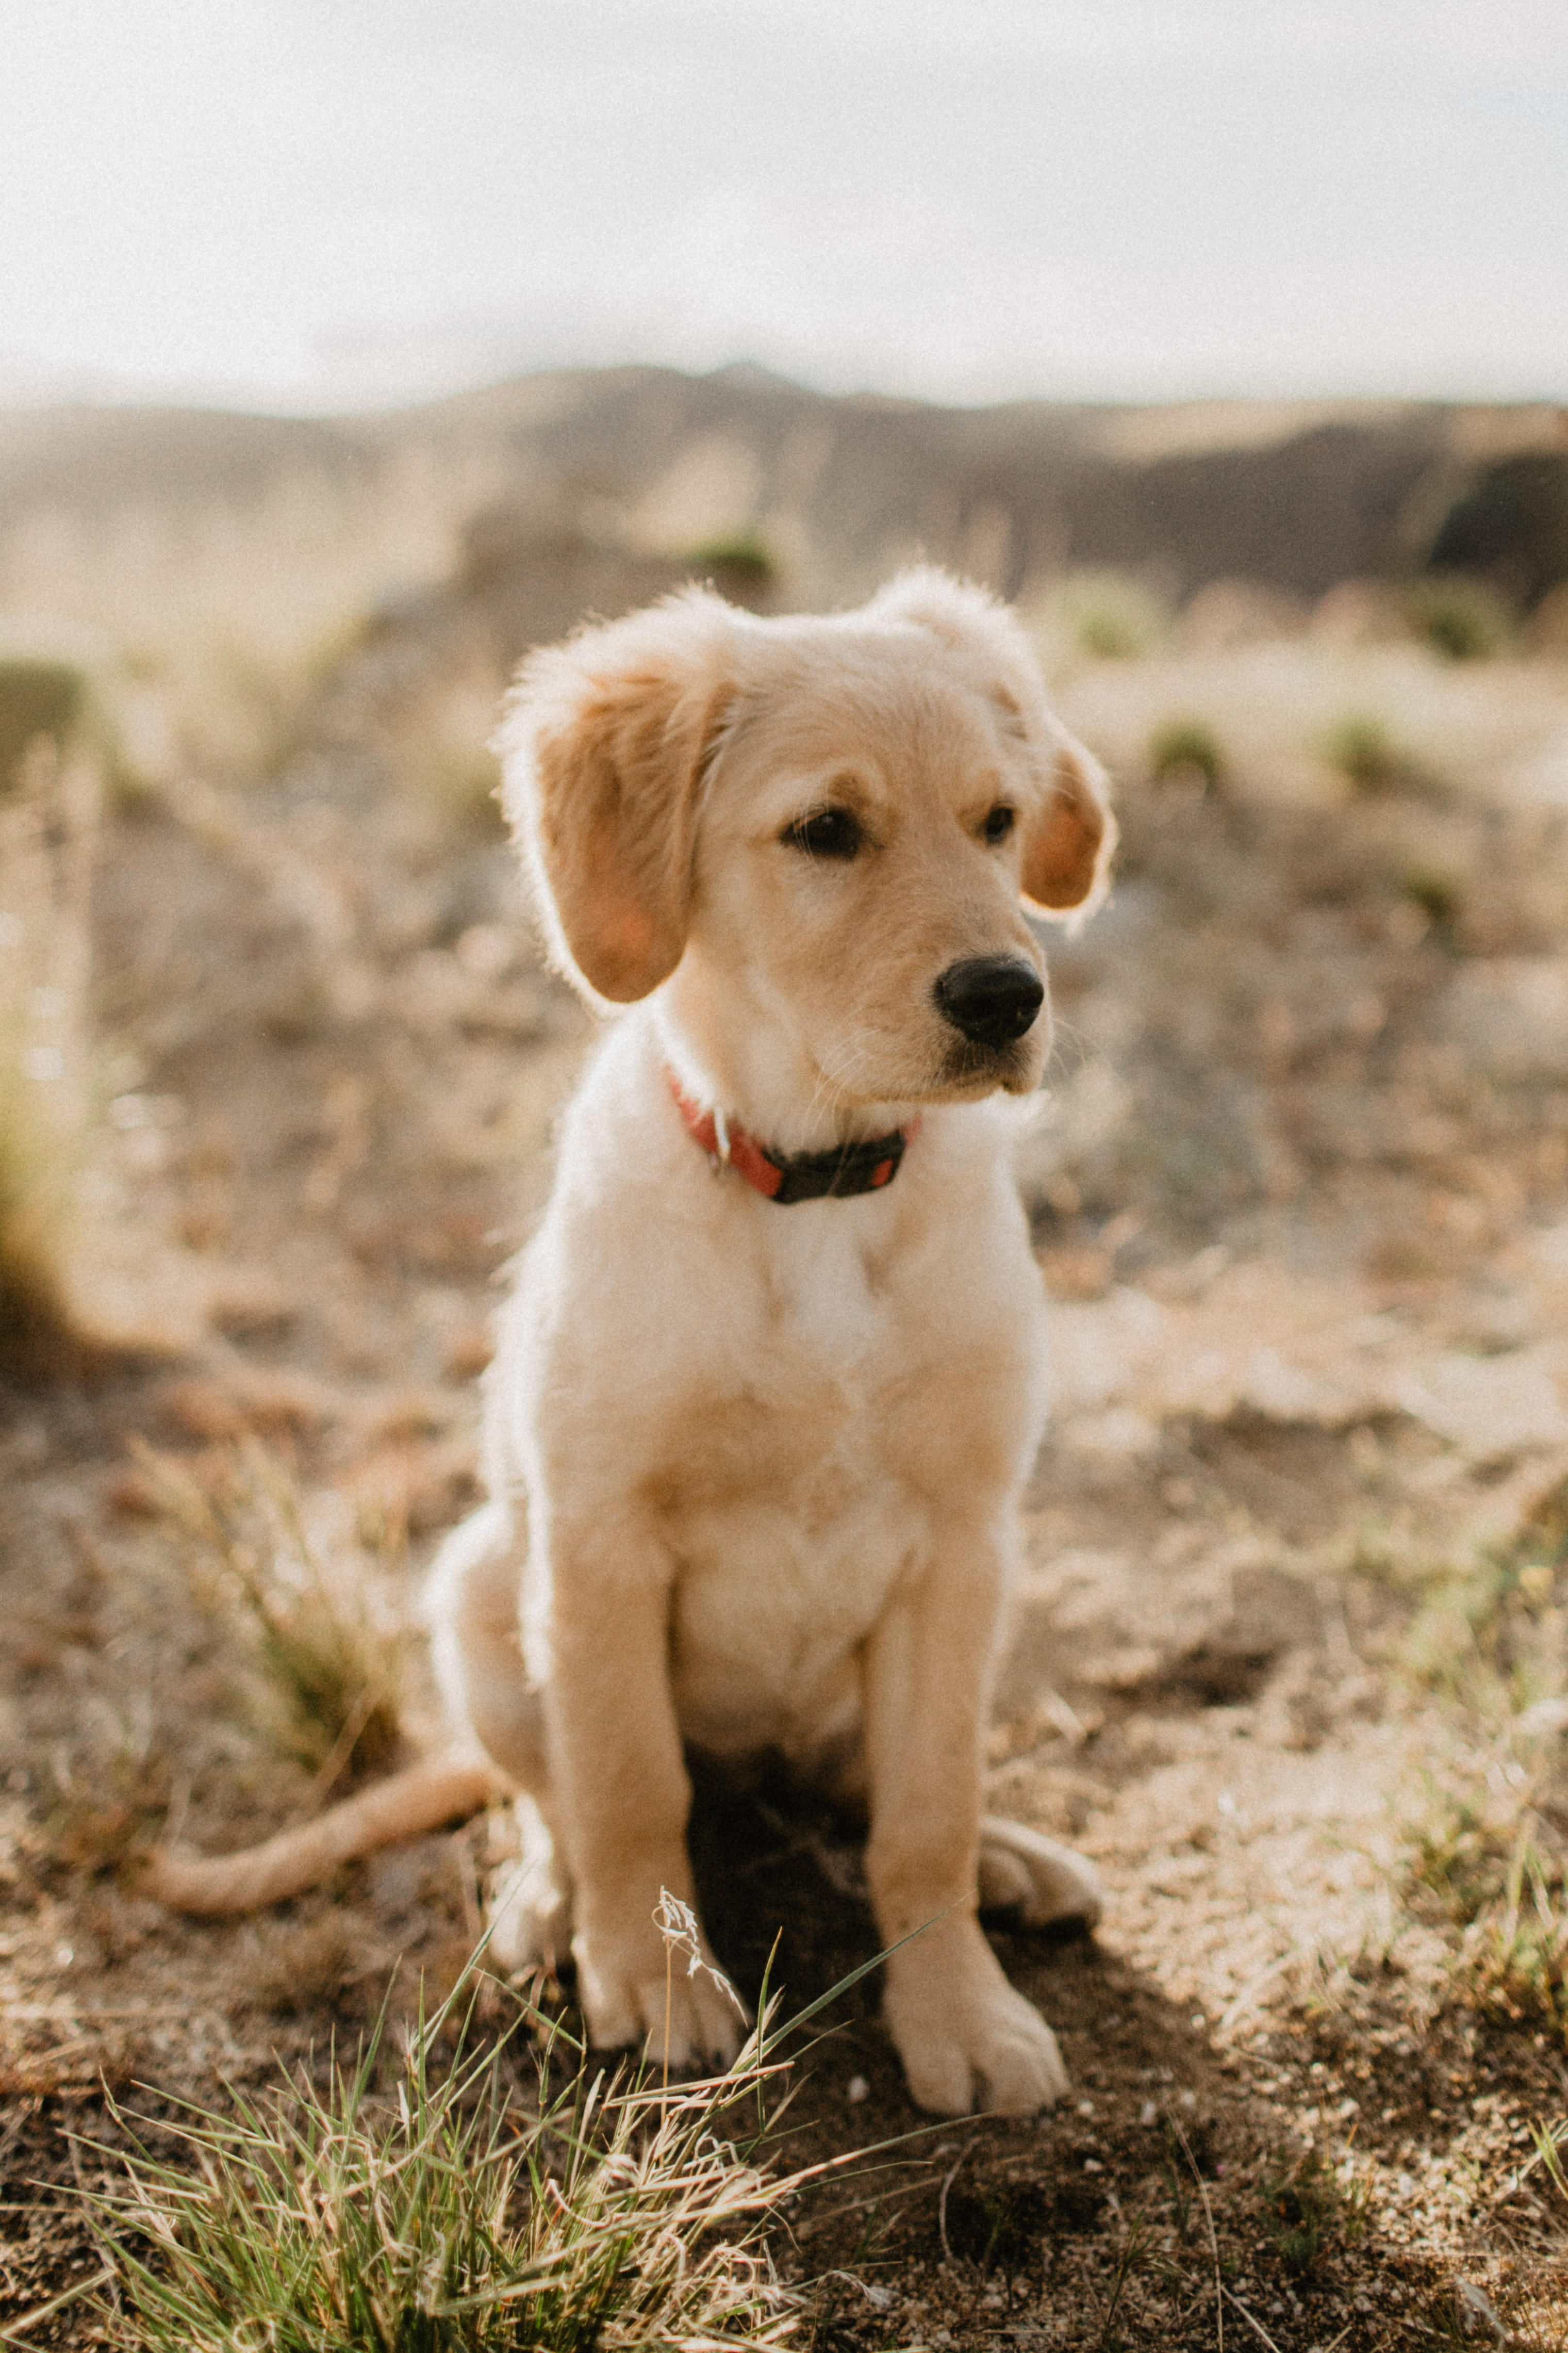 67551 download wallpaper Dog, Animals, Puppy, Retriever, Golden Retriever screensavers and pictures for free